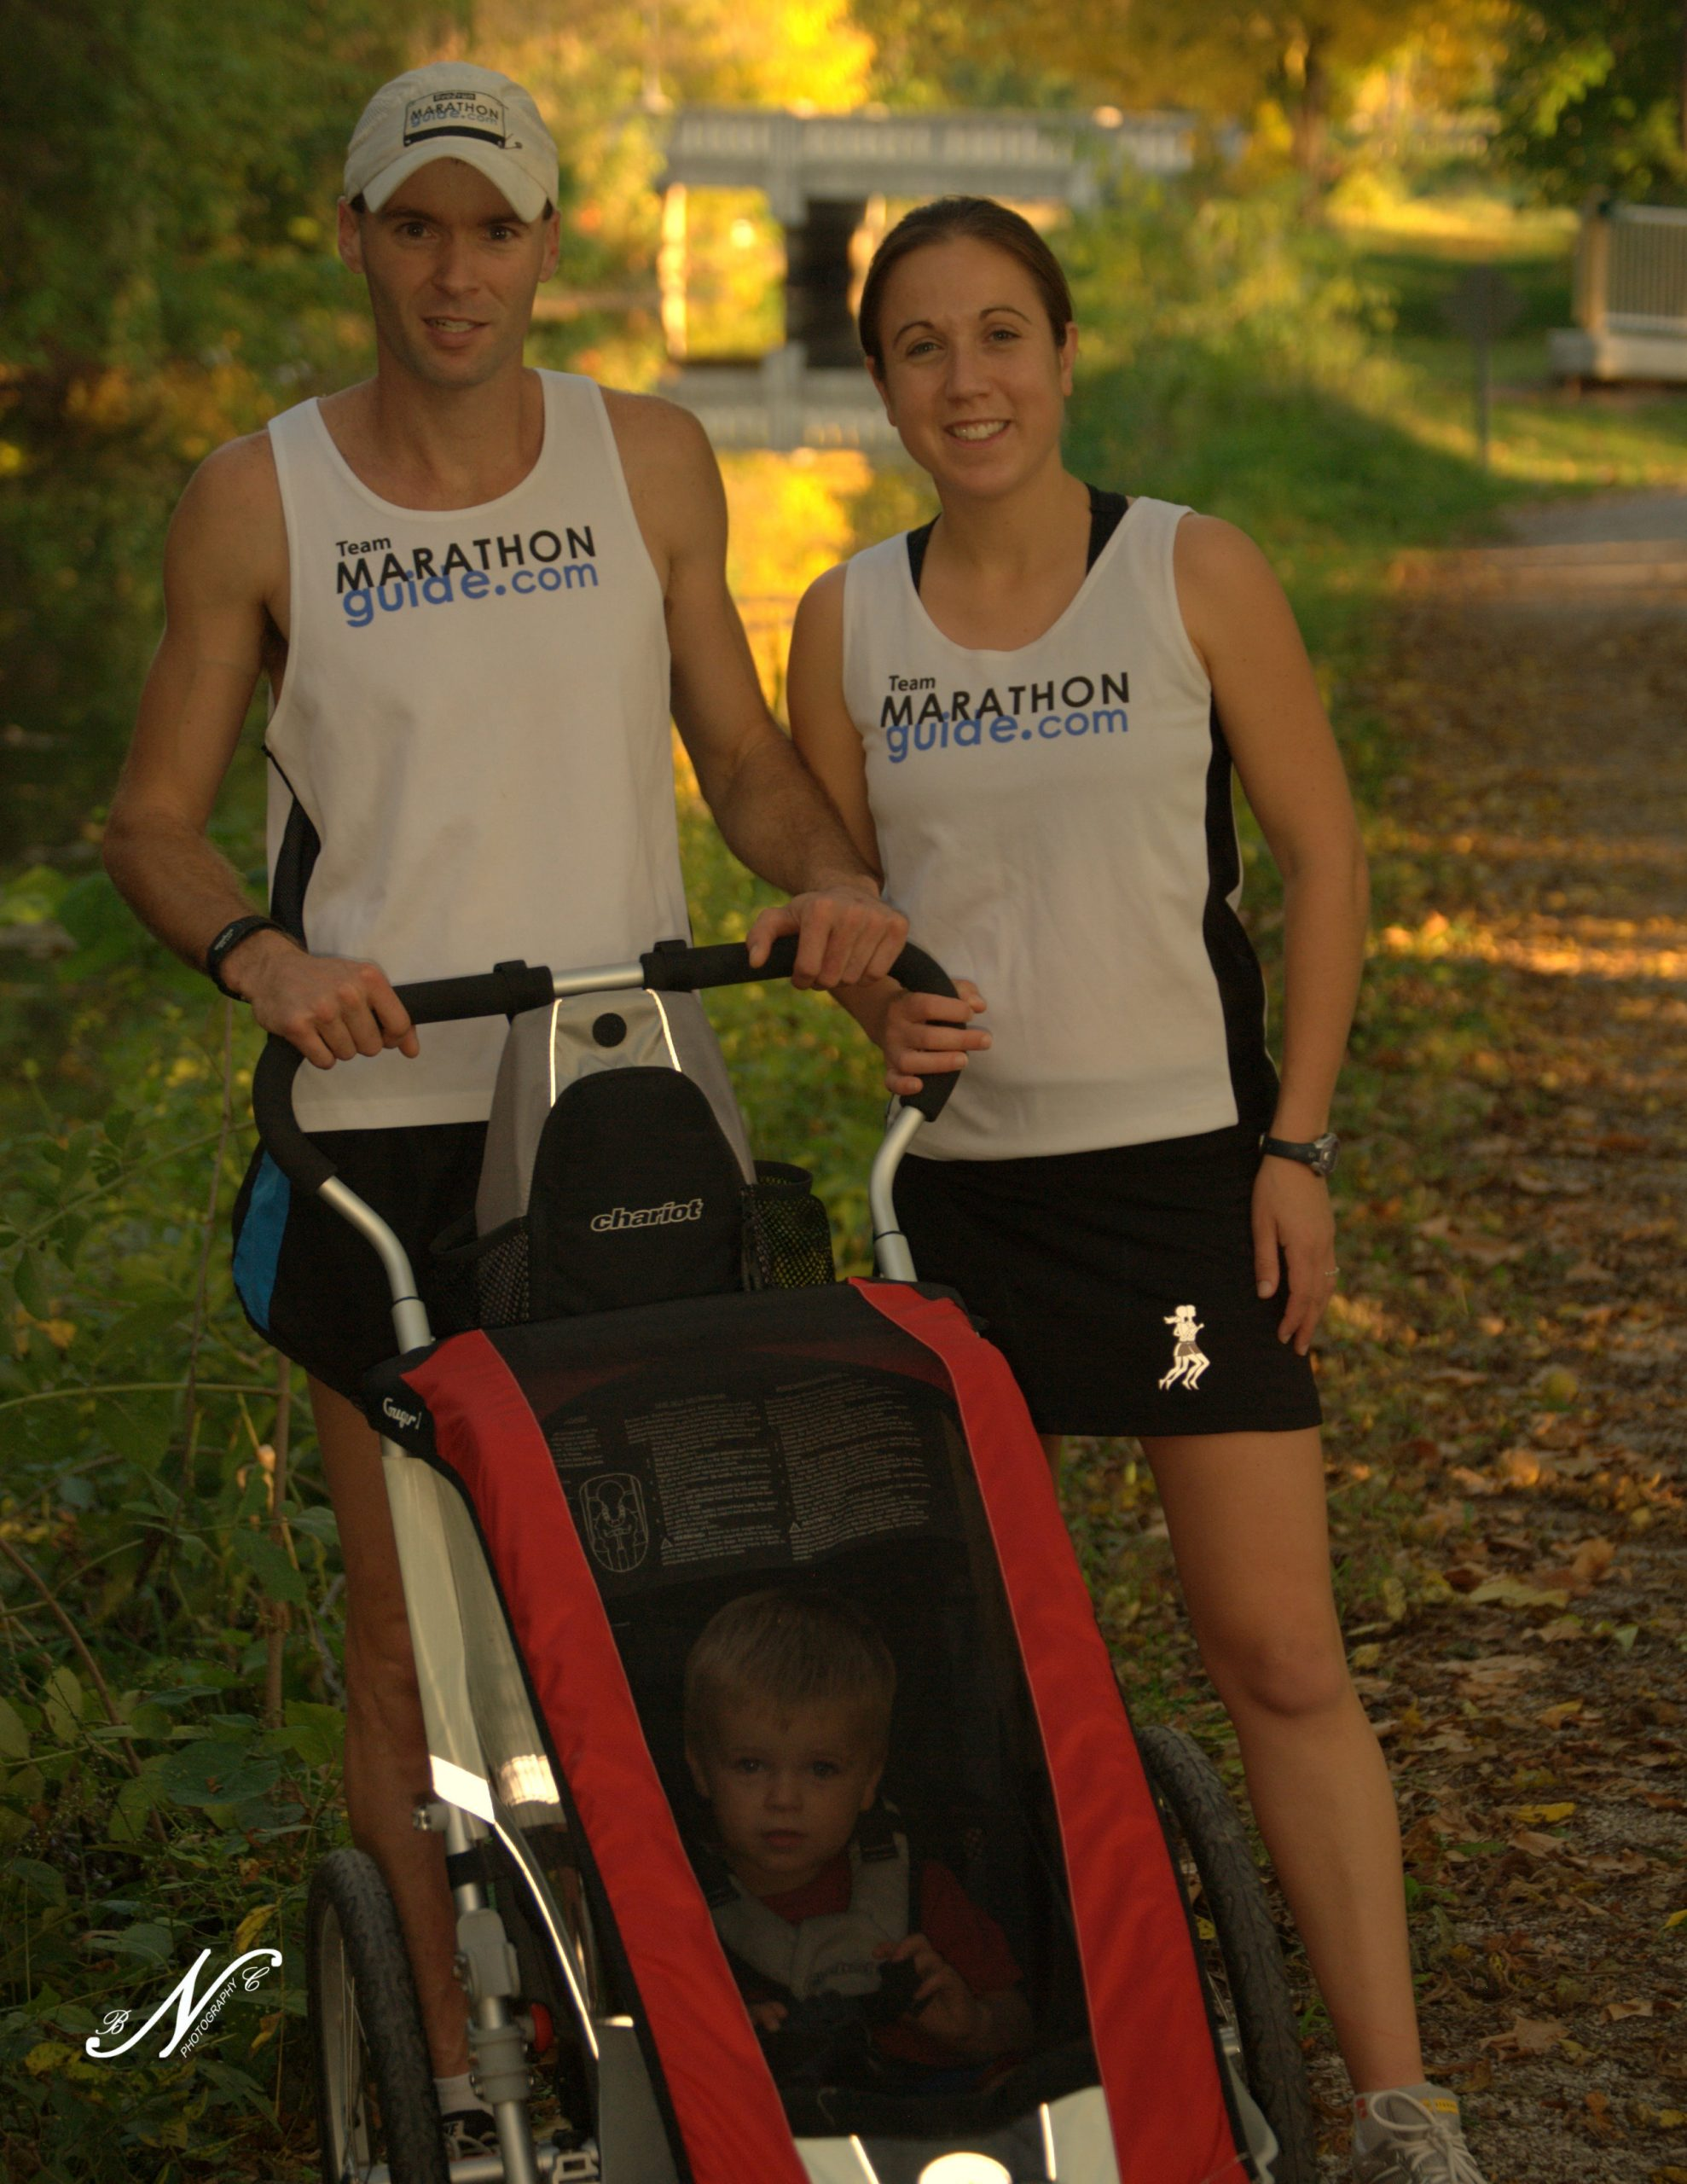 Justin Gillette with wife Melissa and son Miles at a race